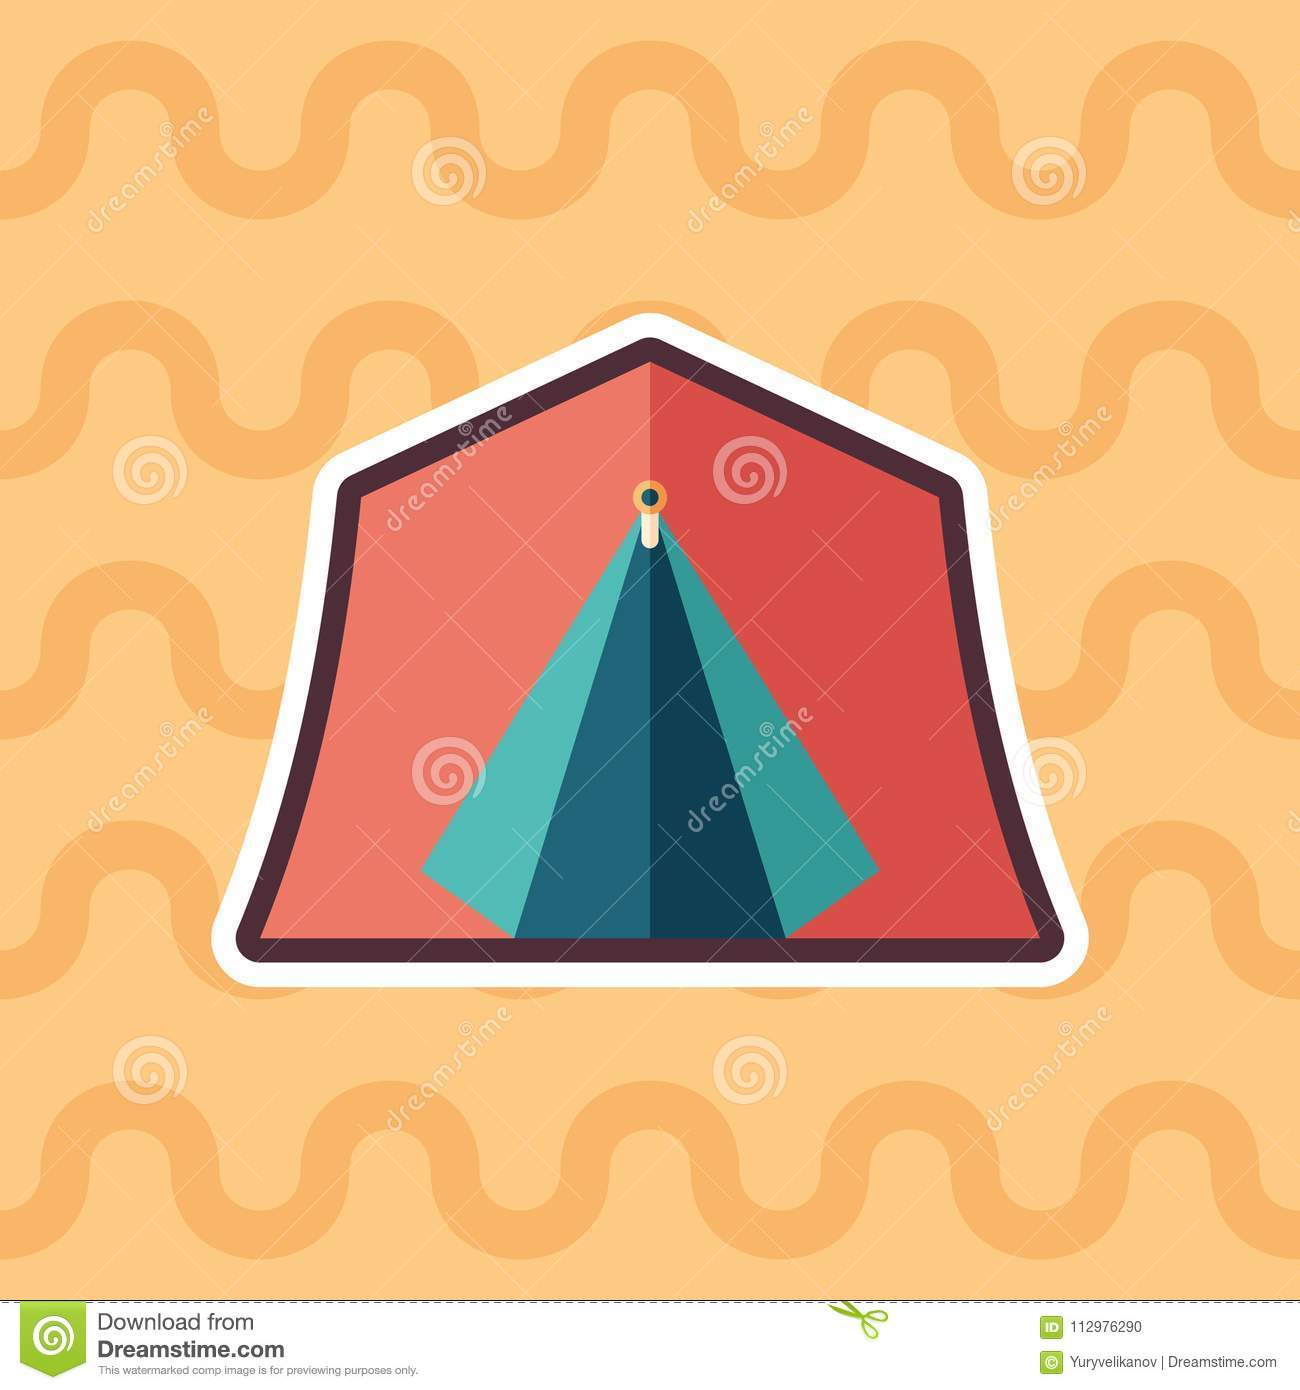 Red tourist tent sticker flat icon with color background.